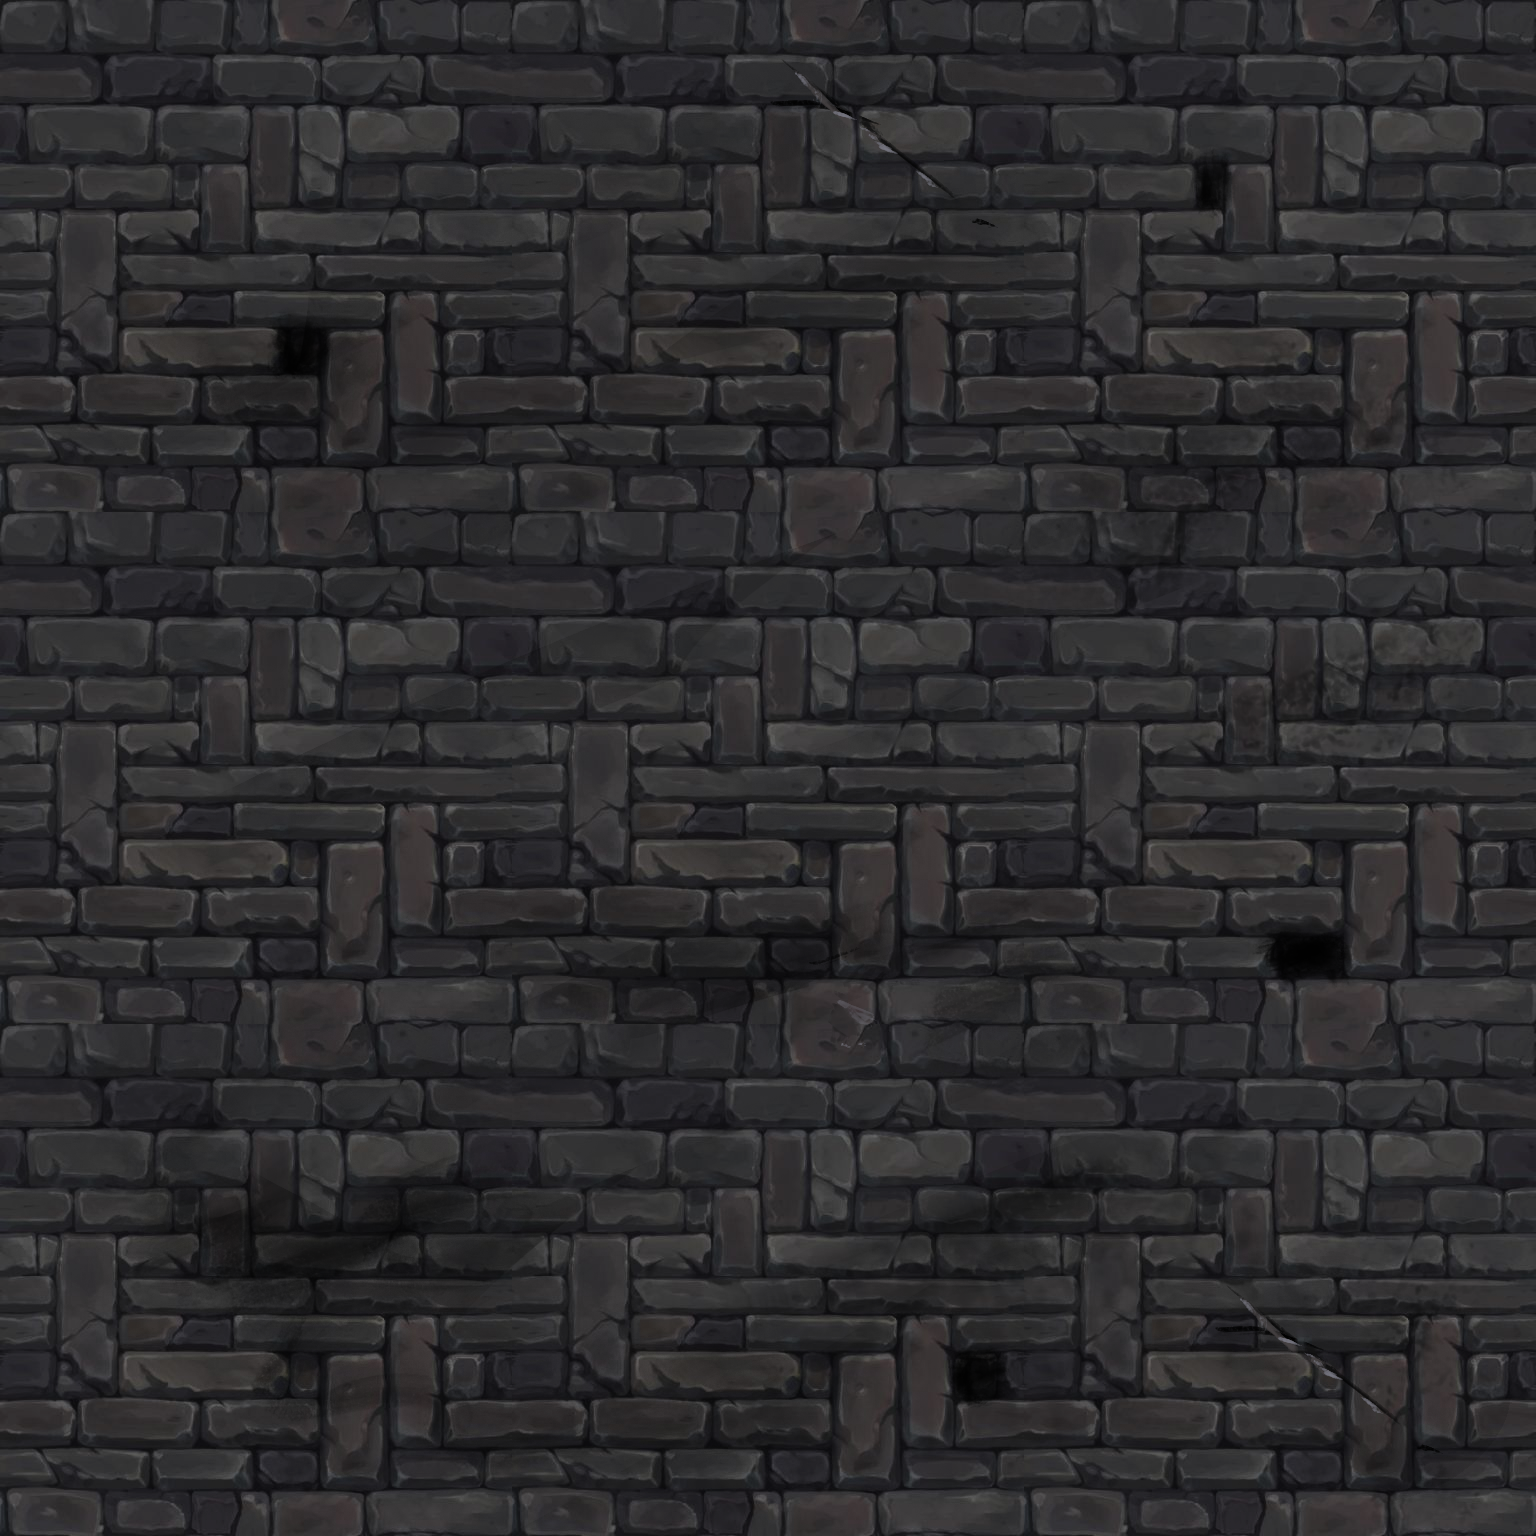 Engine/Media/Models/stone_wall.png